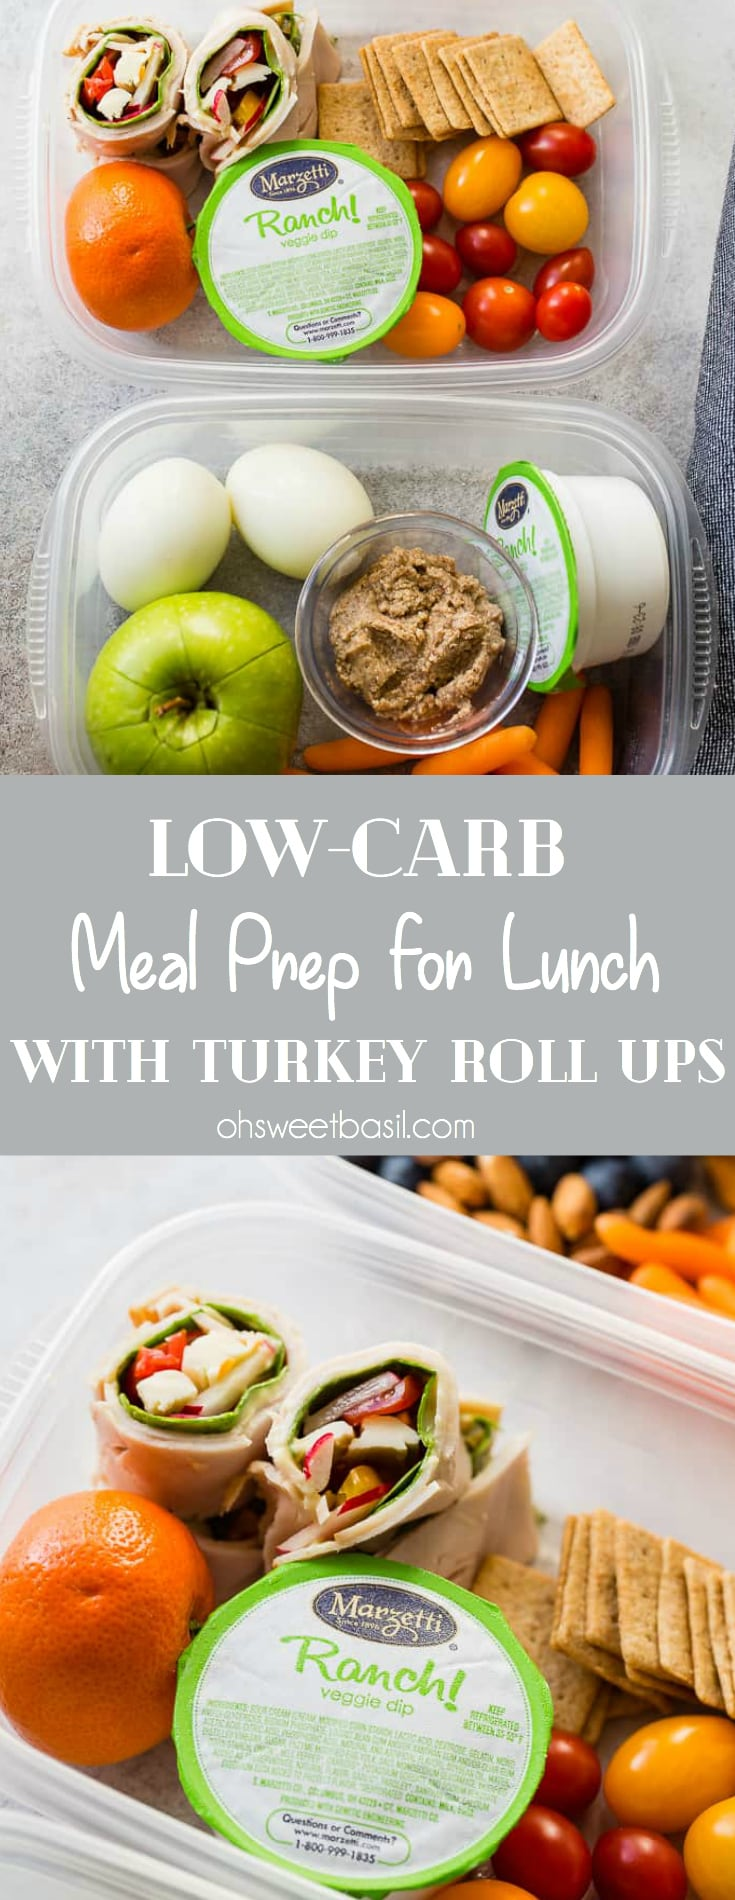 Let's talk about lunch and how much it's the worst meal of the day. Or it was. I've become a convert with this low-carb meal prep for lunch with turkey roll ups!